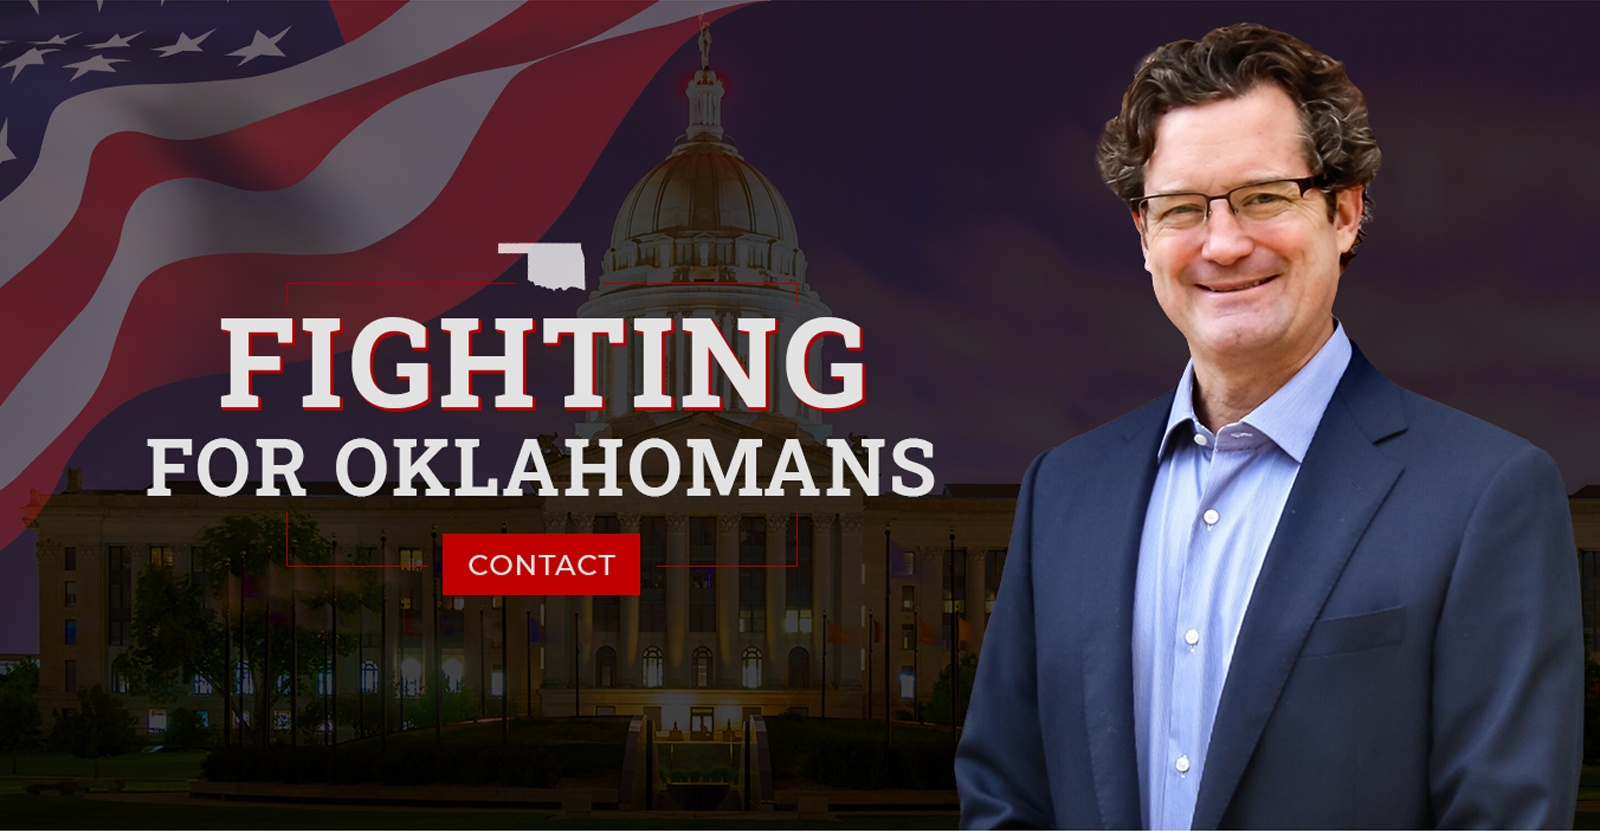 Fighting for oklahomans